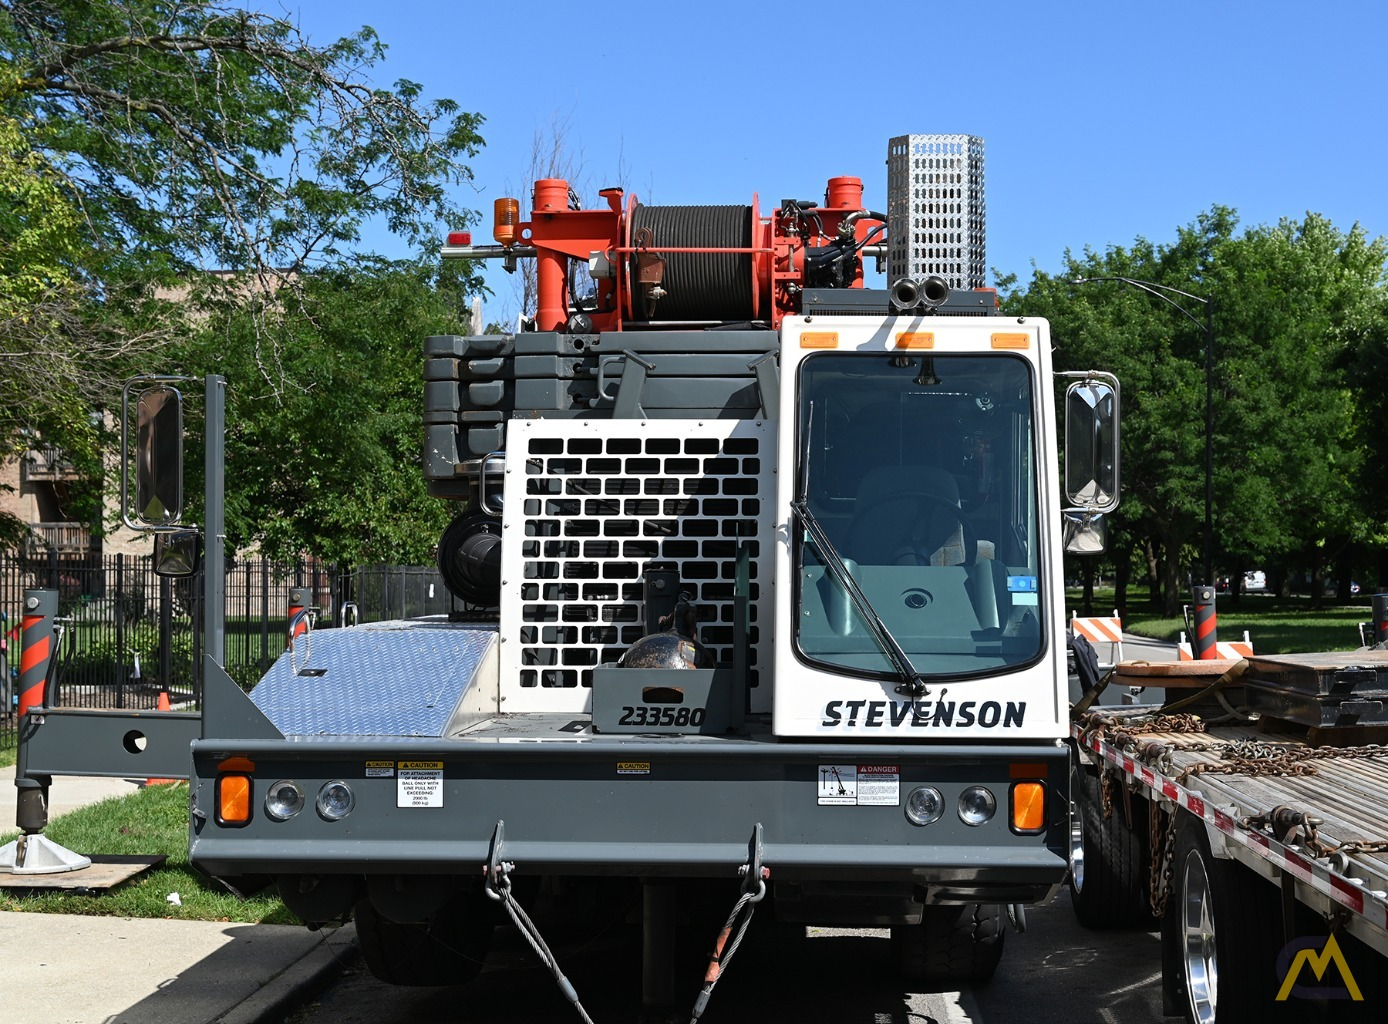 2013 Grove TMS9000E 110-Ton Hydraulic Truck Crane Motivated Seller, All Reasonable Offers Considered 3